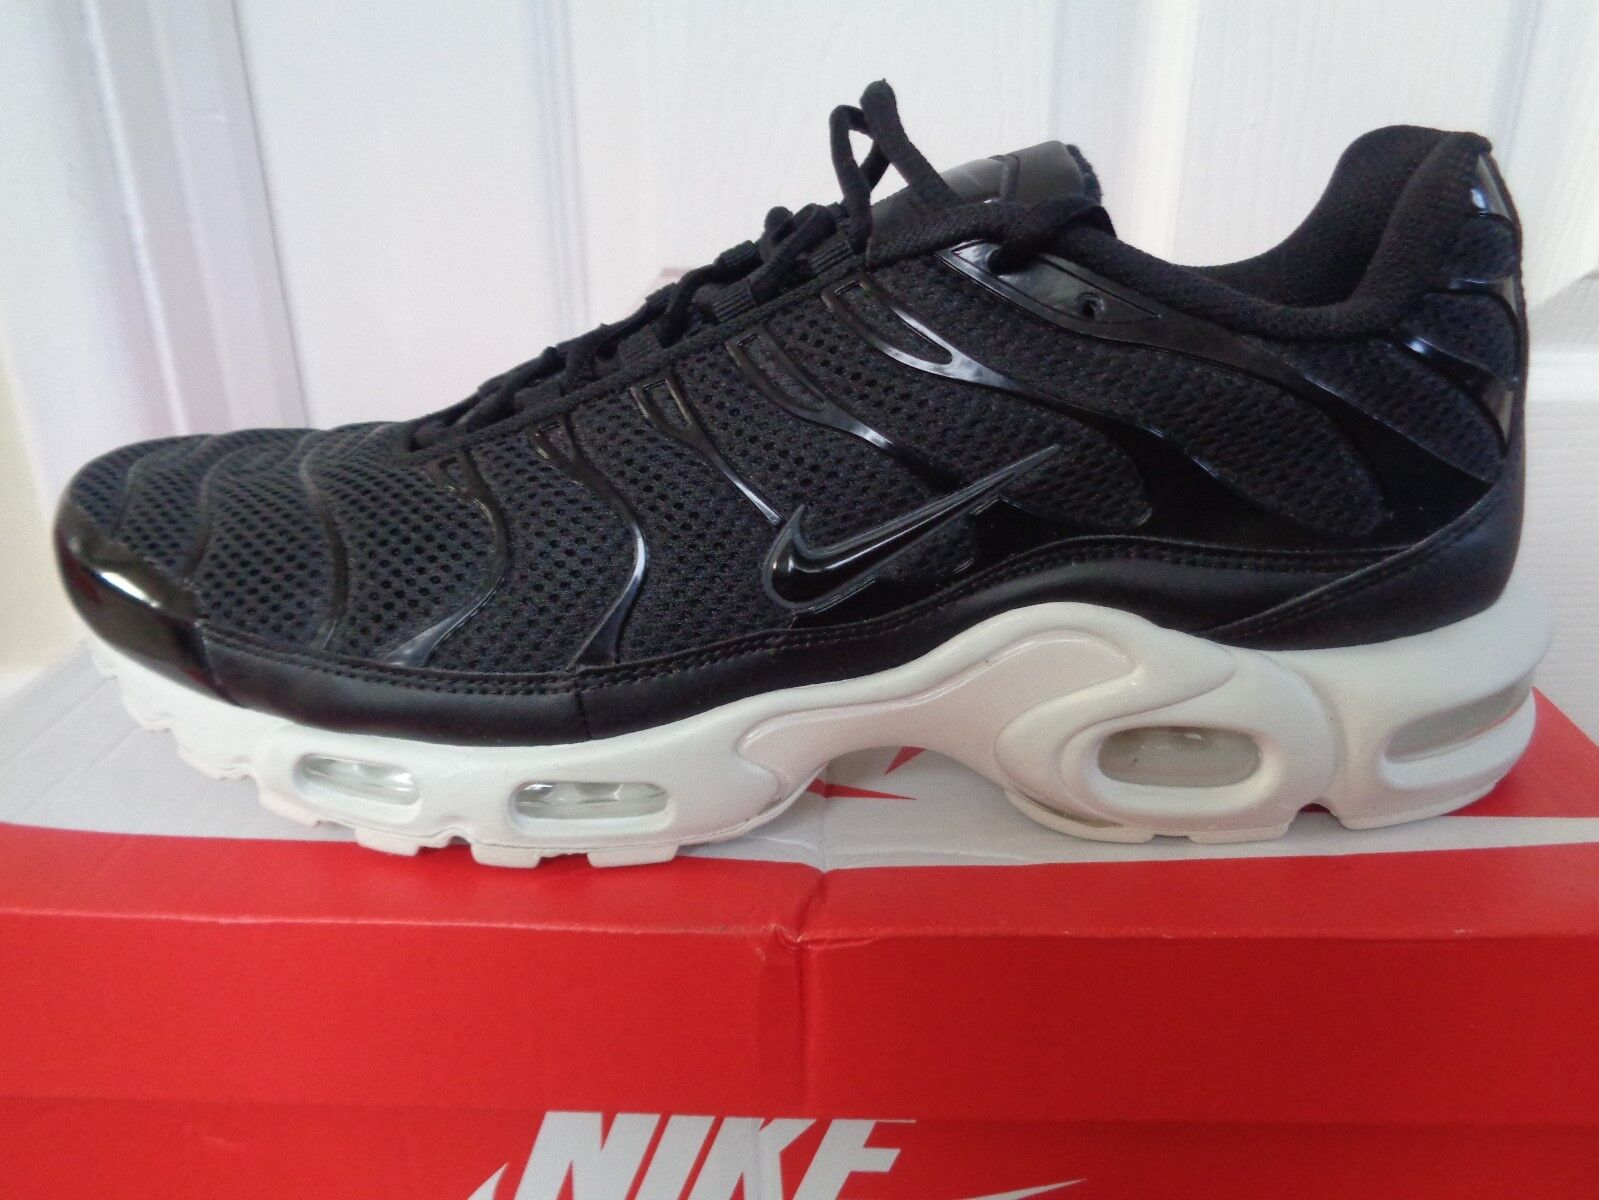 Nike Air max plus BR trainers sneakers 898014 001 uk 6 eu 40 us 7 NEW+BOX